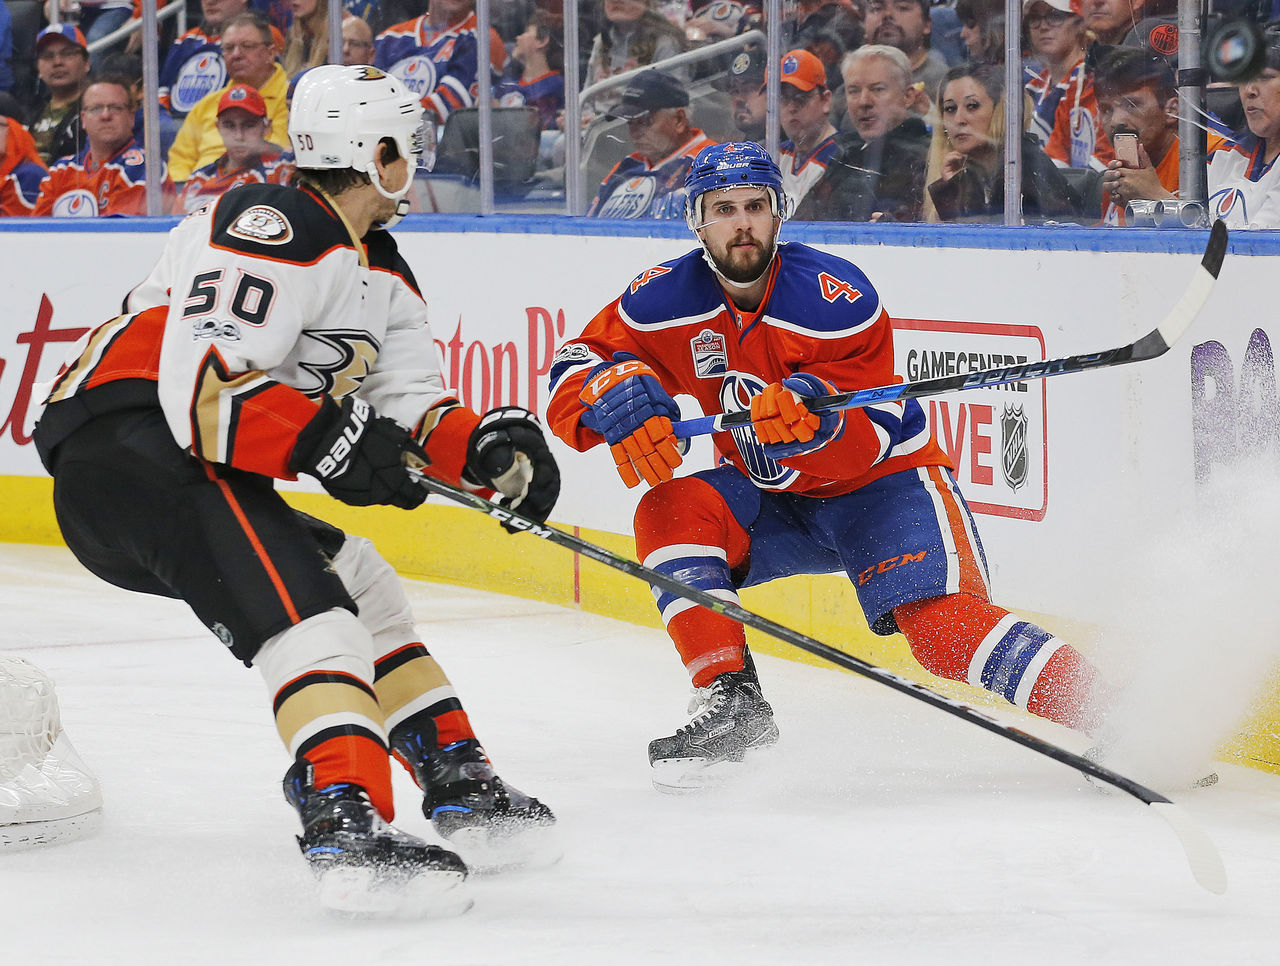 Cropped 2017 04 02t035907z 157869633 nocid rtrmadp 3 nhl anaheim ducks at edmonton oilers